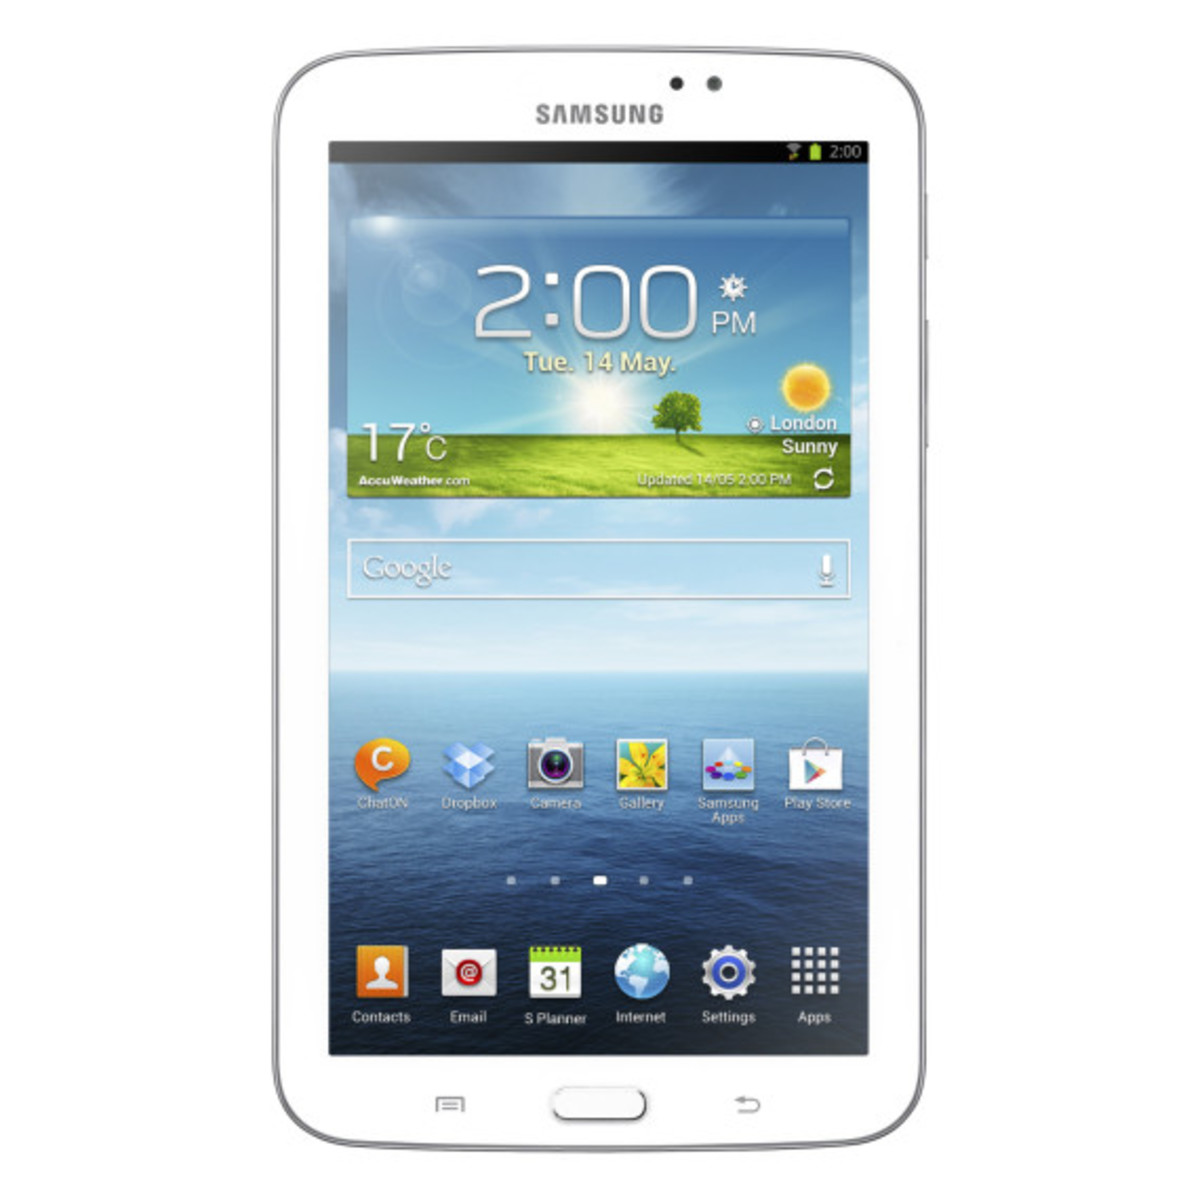 Samsung Galaxy Tab 3 - Officially Unveiled - 1